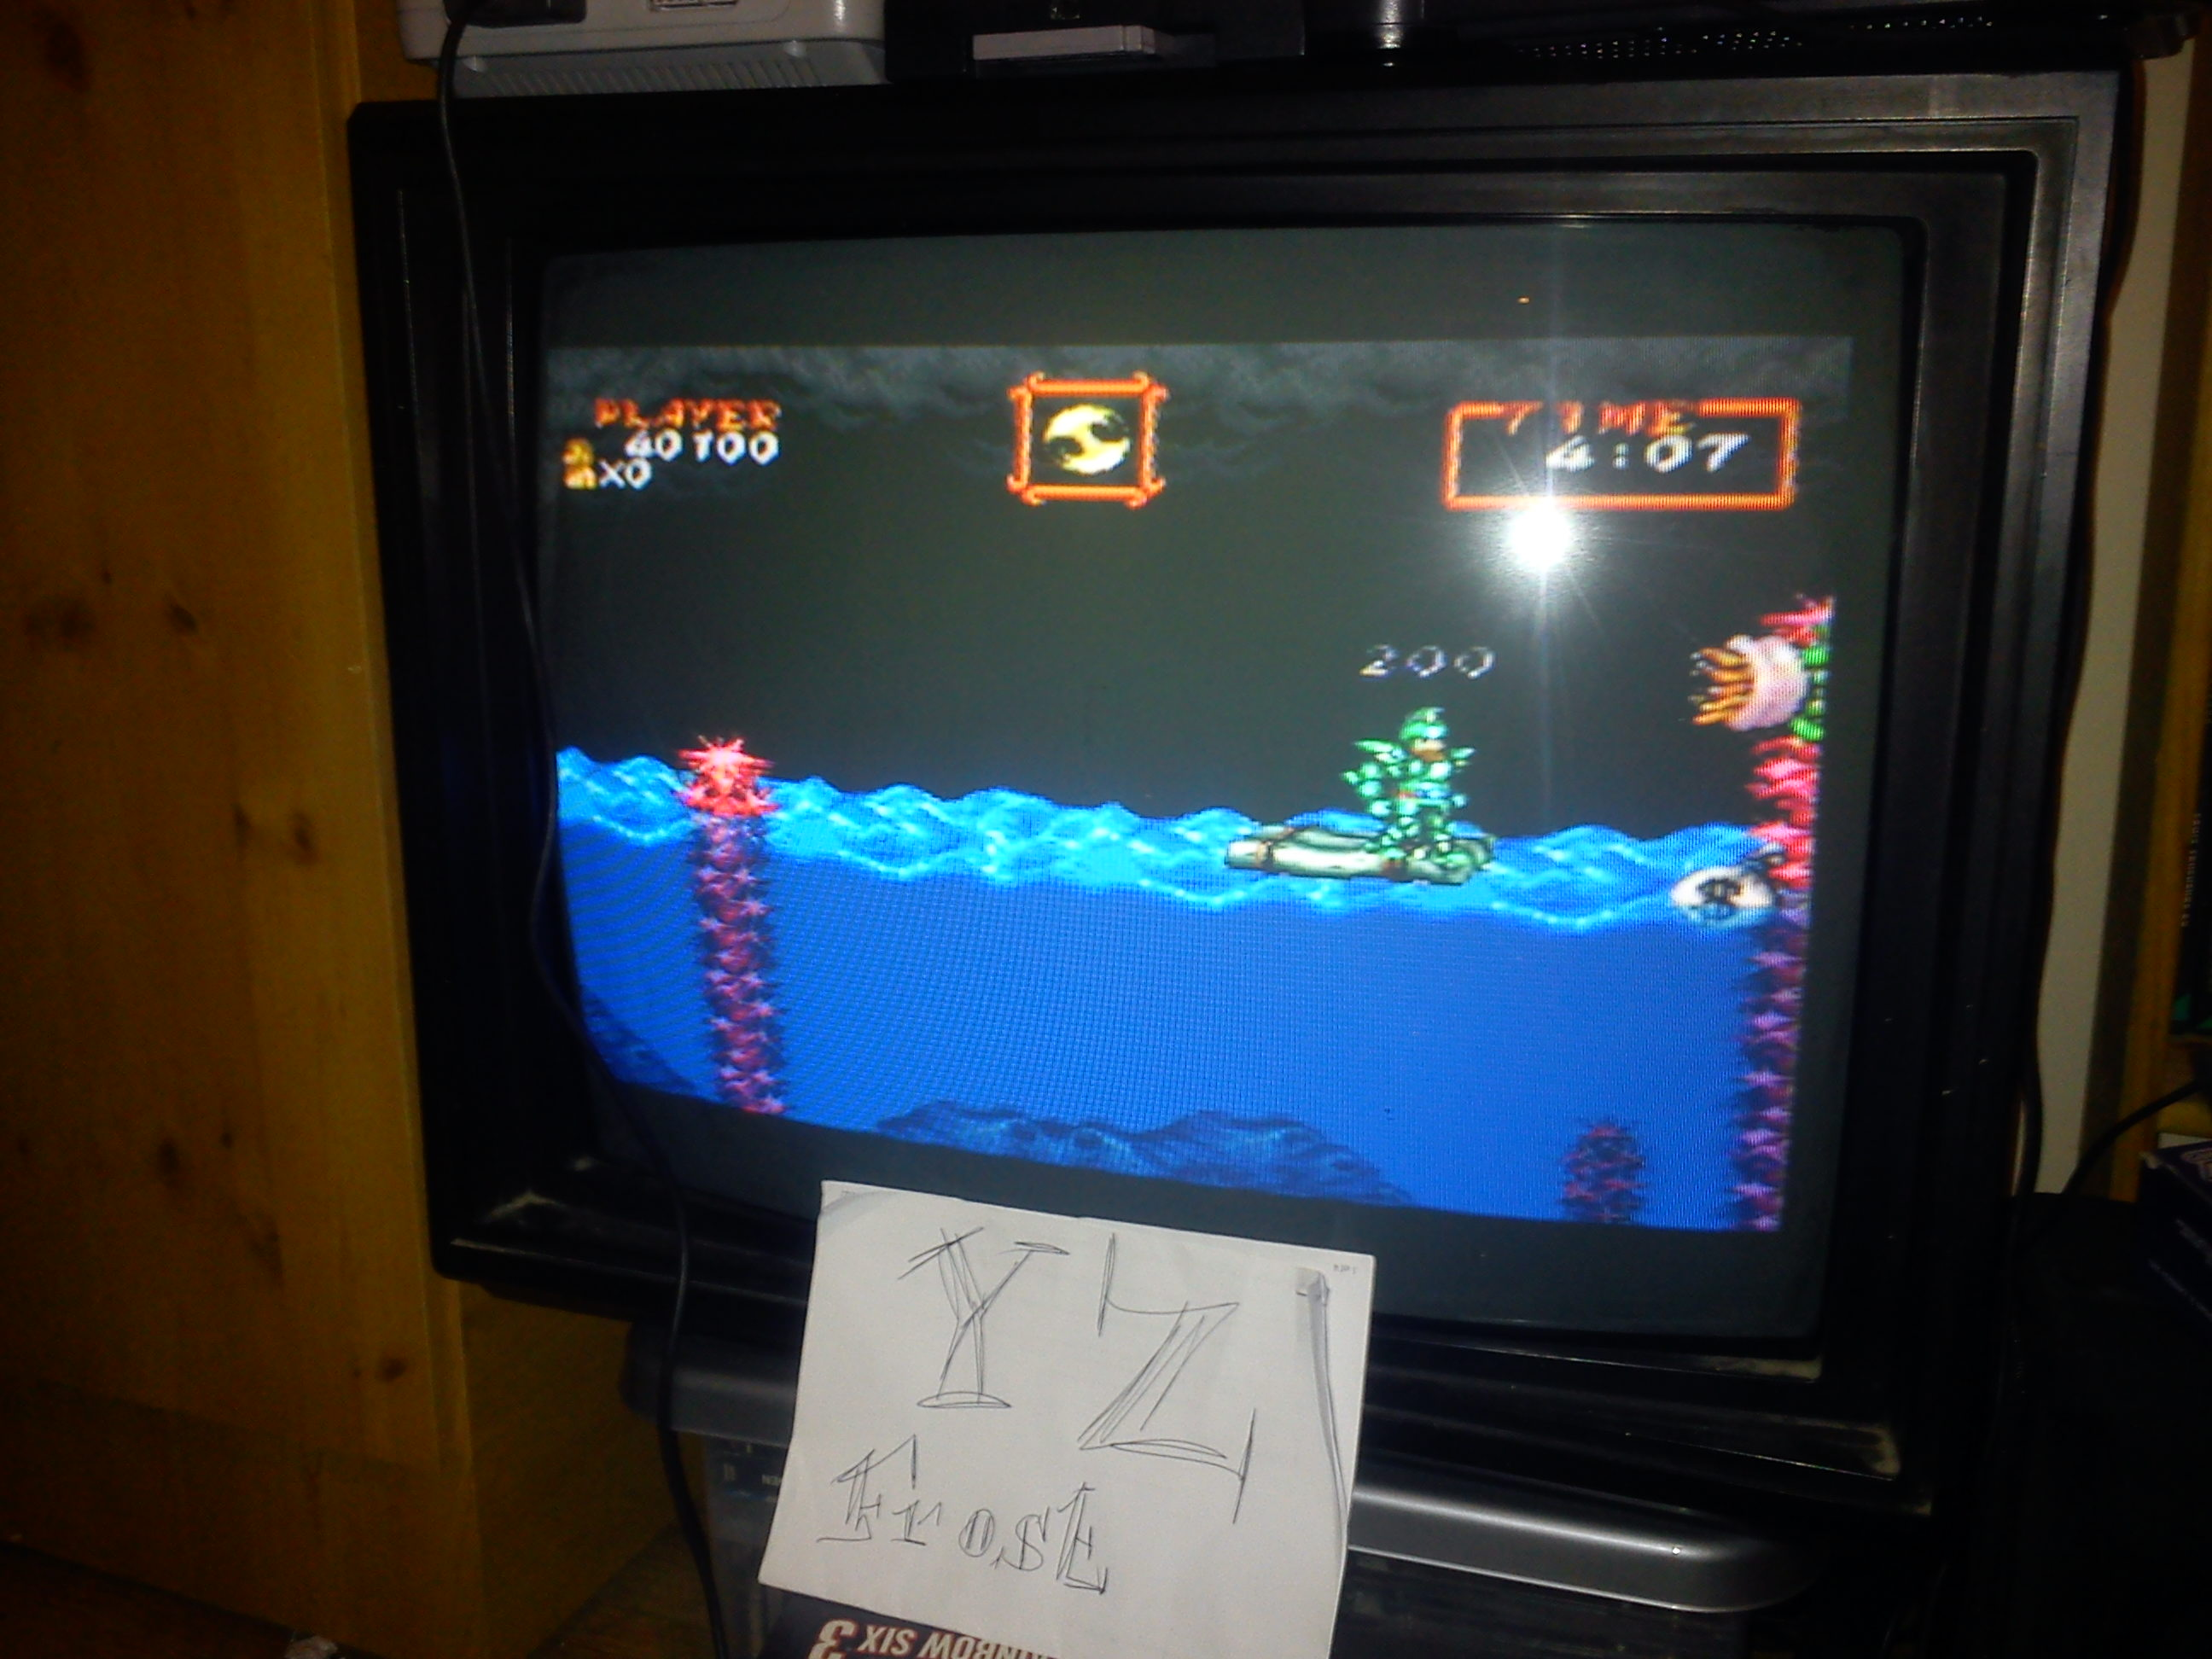 Super Ghouls N Ghosts 40,100 points